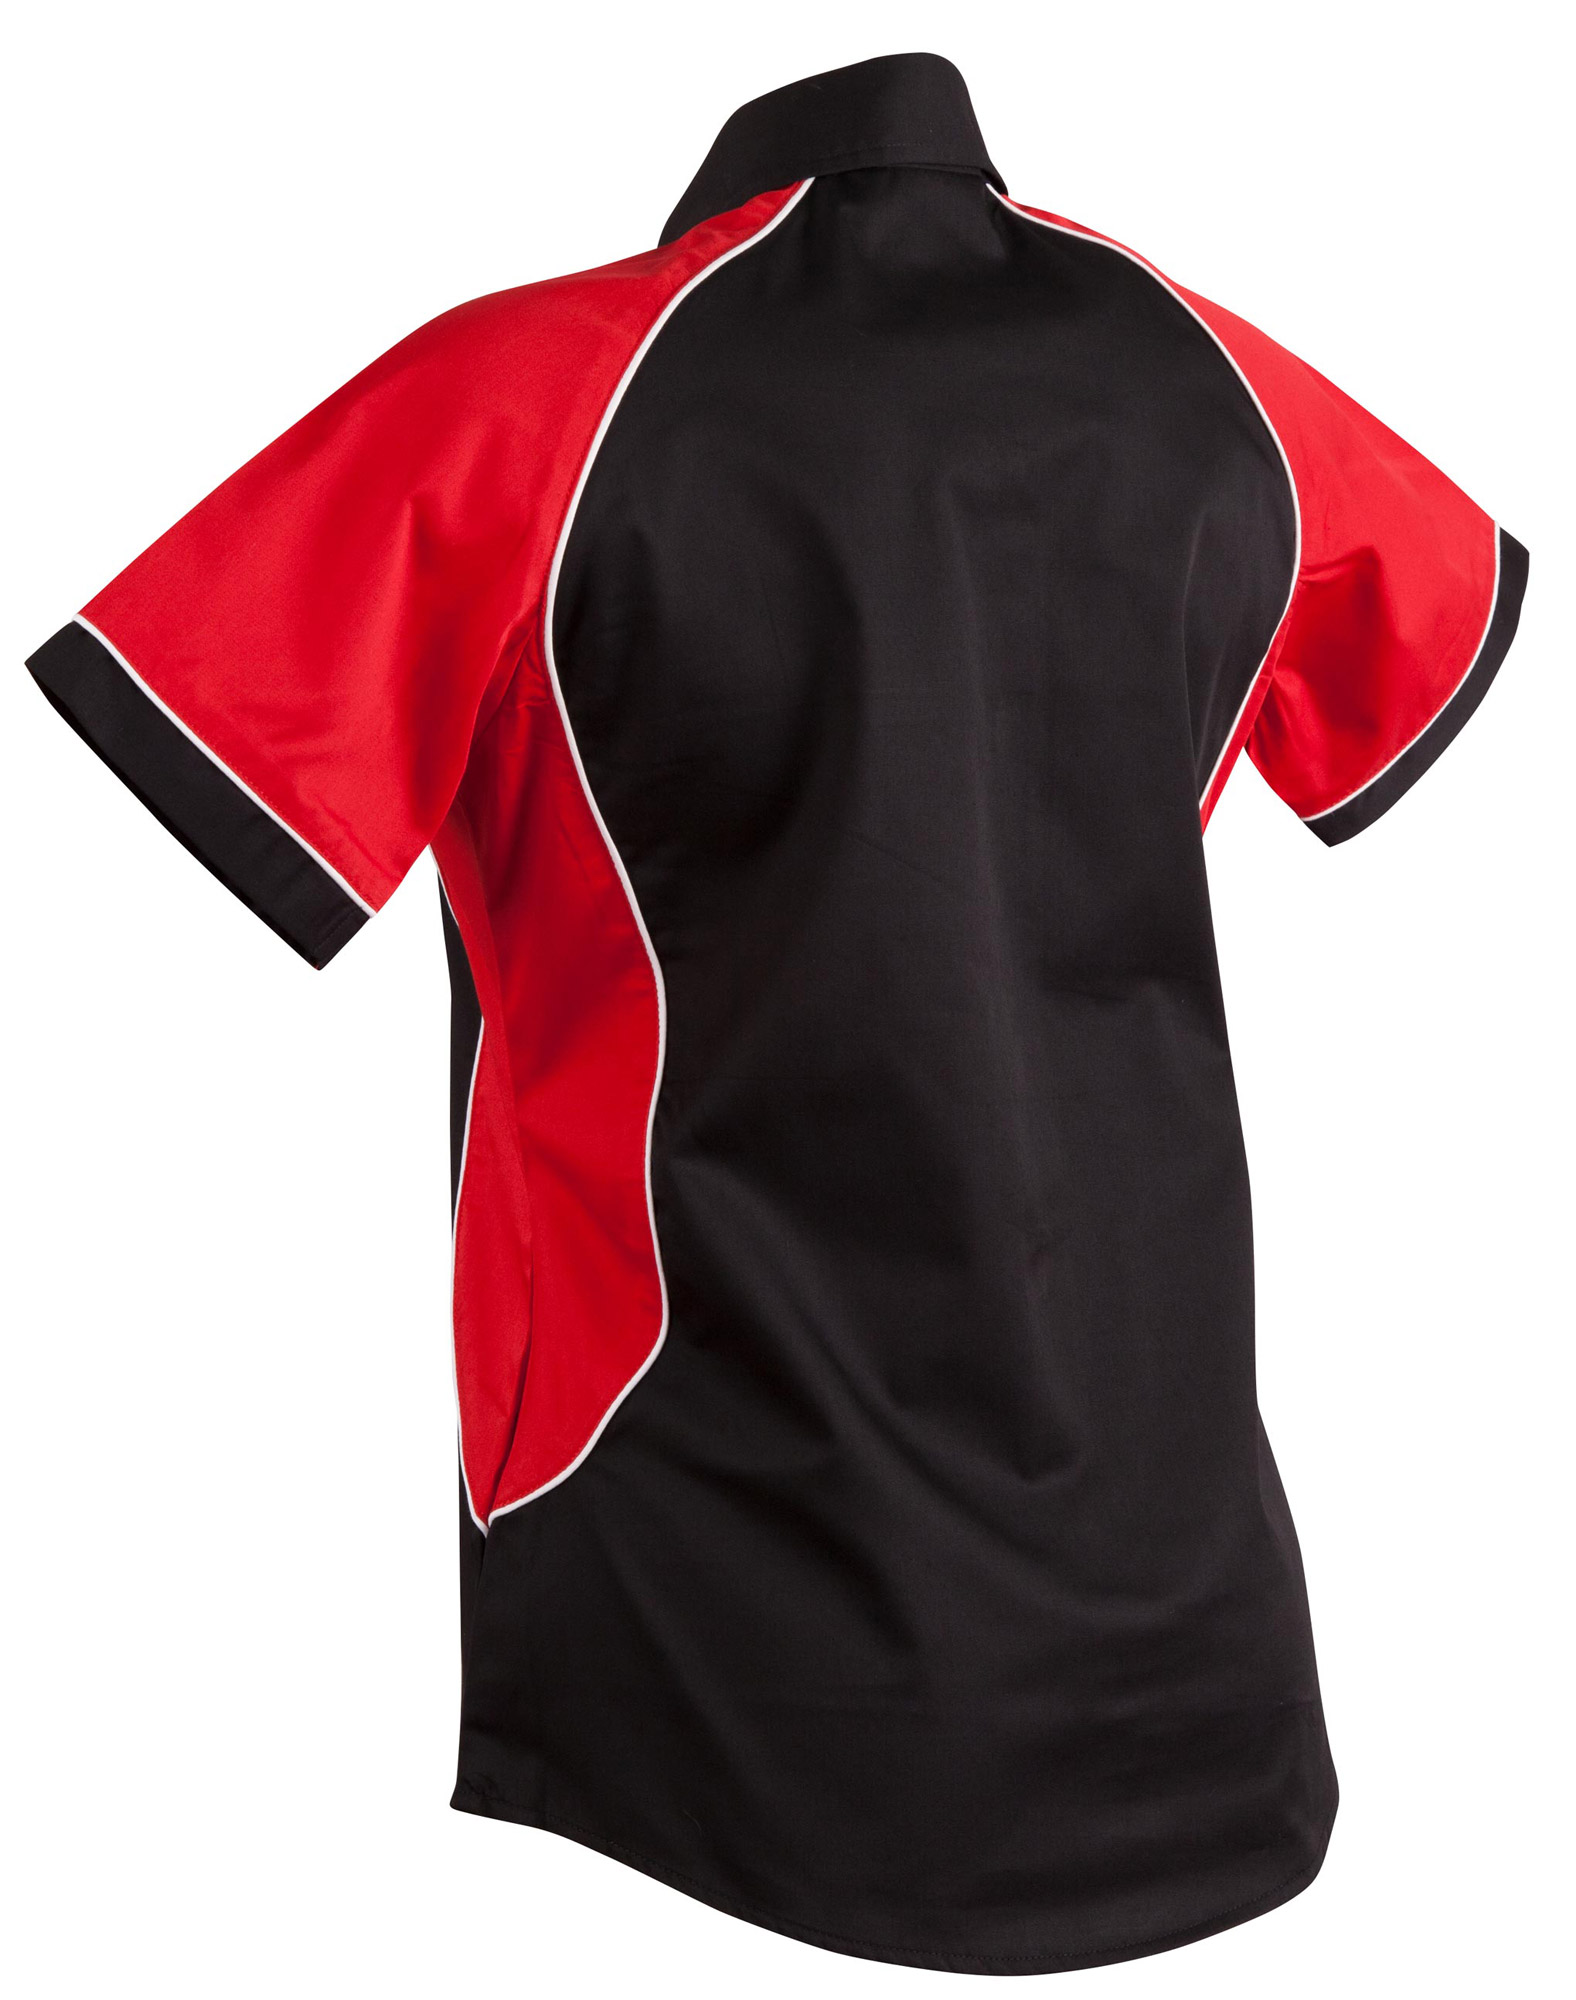 http://ws-imgs.s3.amazonaws.com/BUSINESSSHIRTS/BS16_Black.White.Red_Back3Q_l.jpg